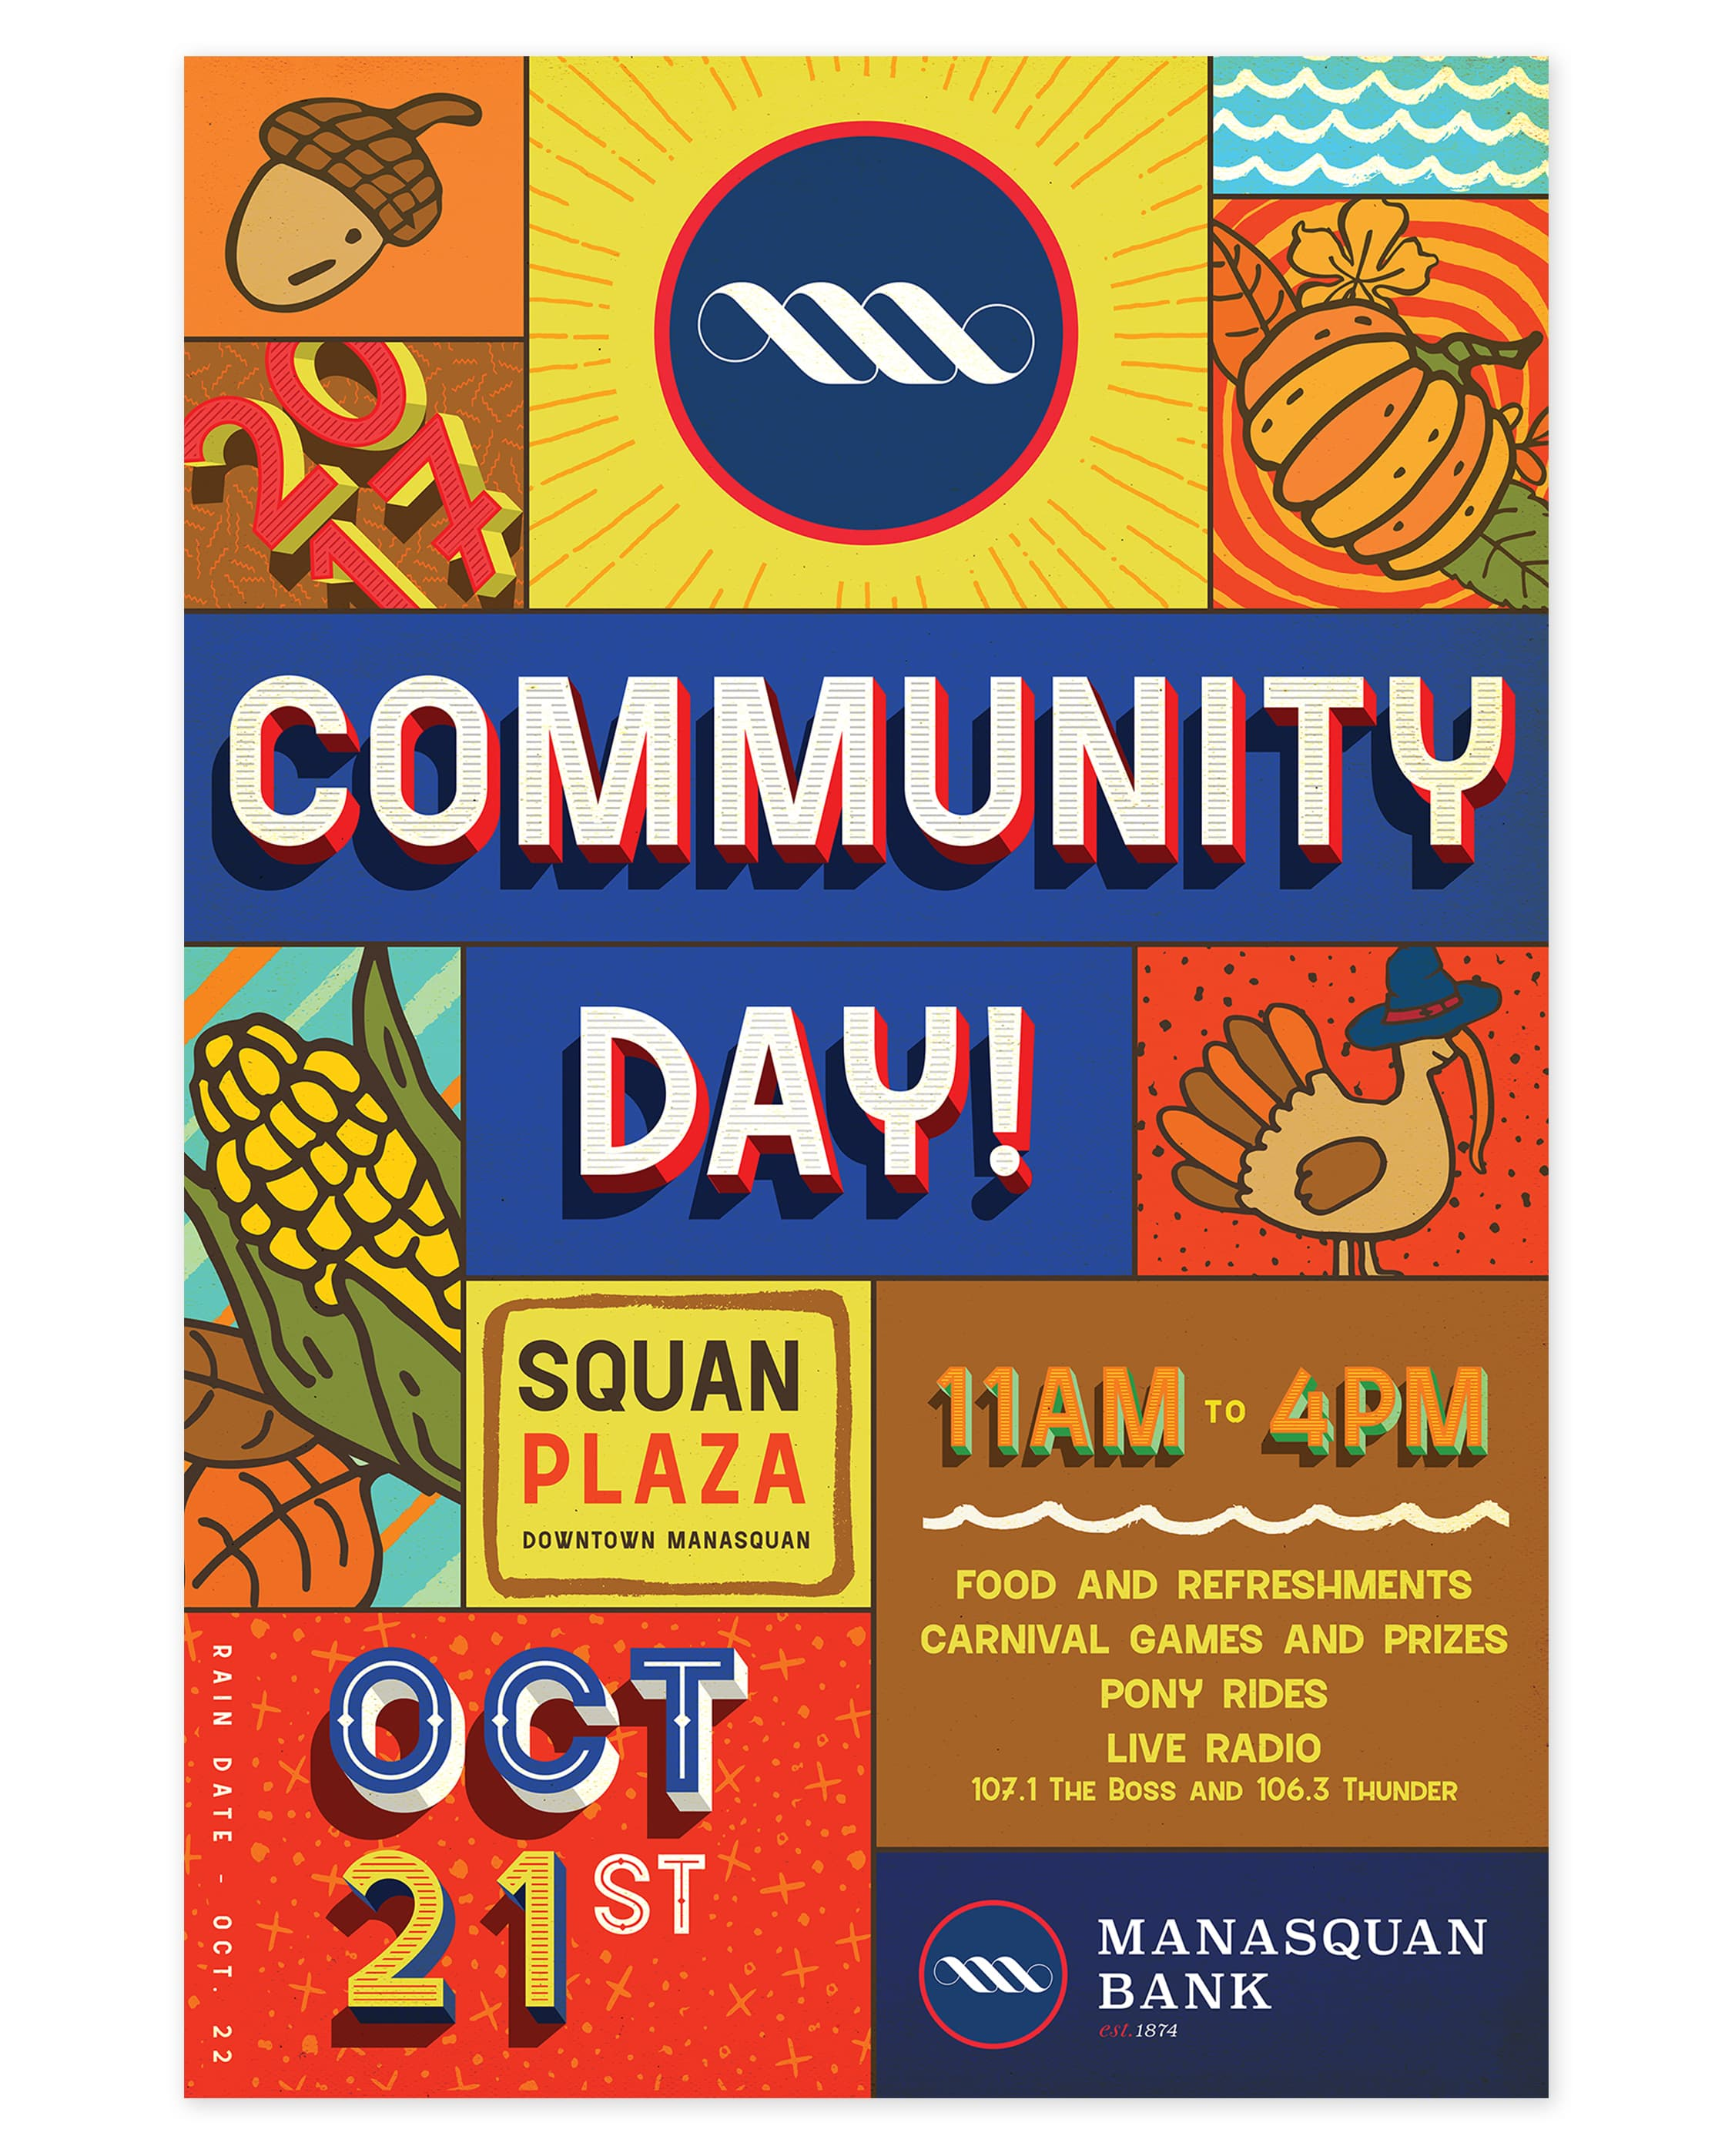 Manasquan Bank Community Day Poster